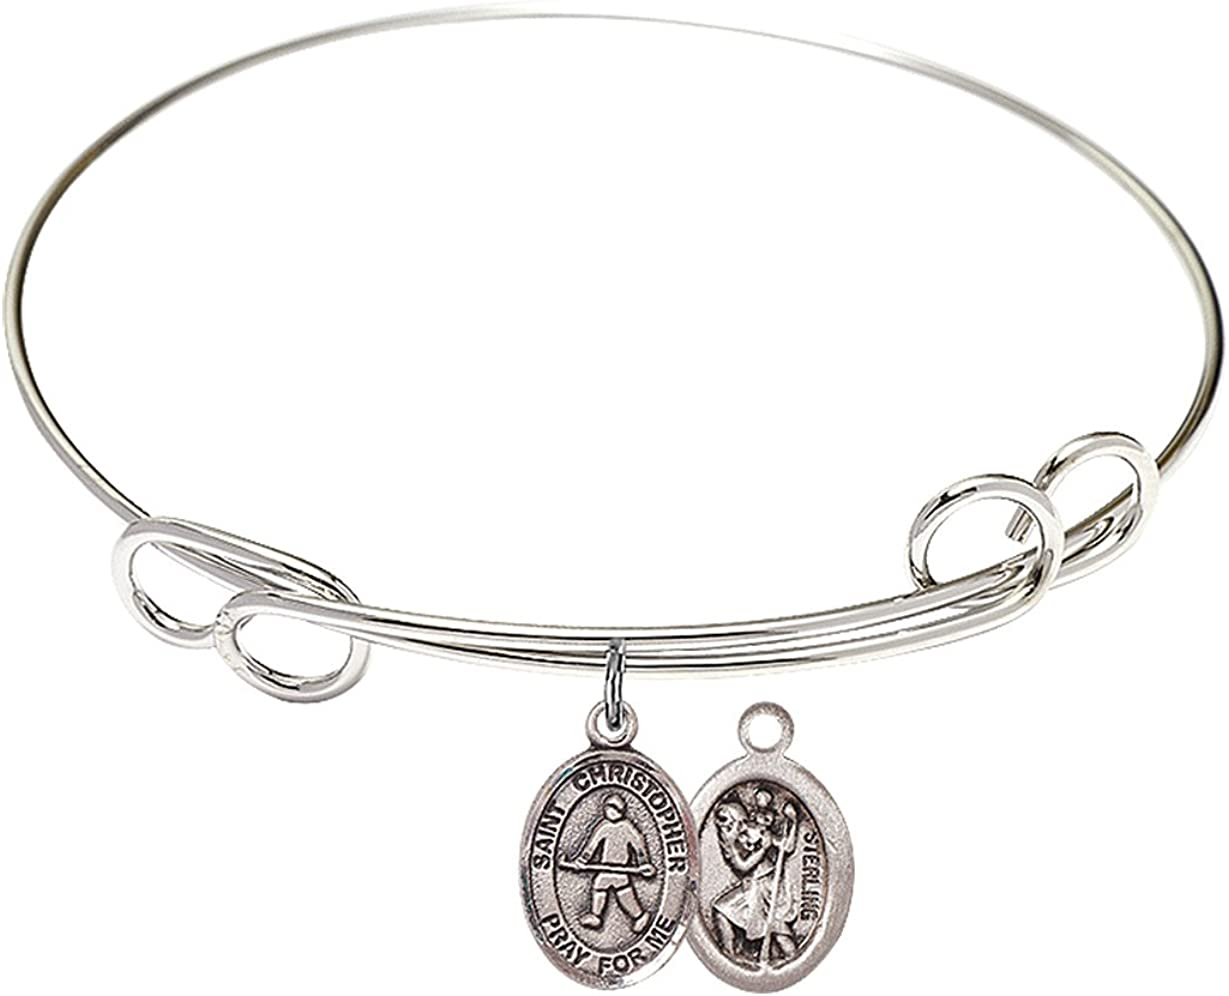 F A Dumont 7 1 2 inch Round In a popularity Bangle Loop Double Bracelet Max 88% OFF S with